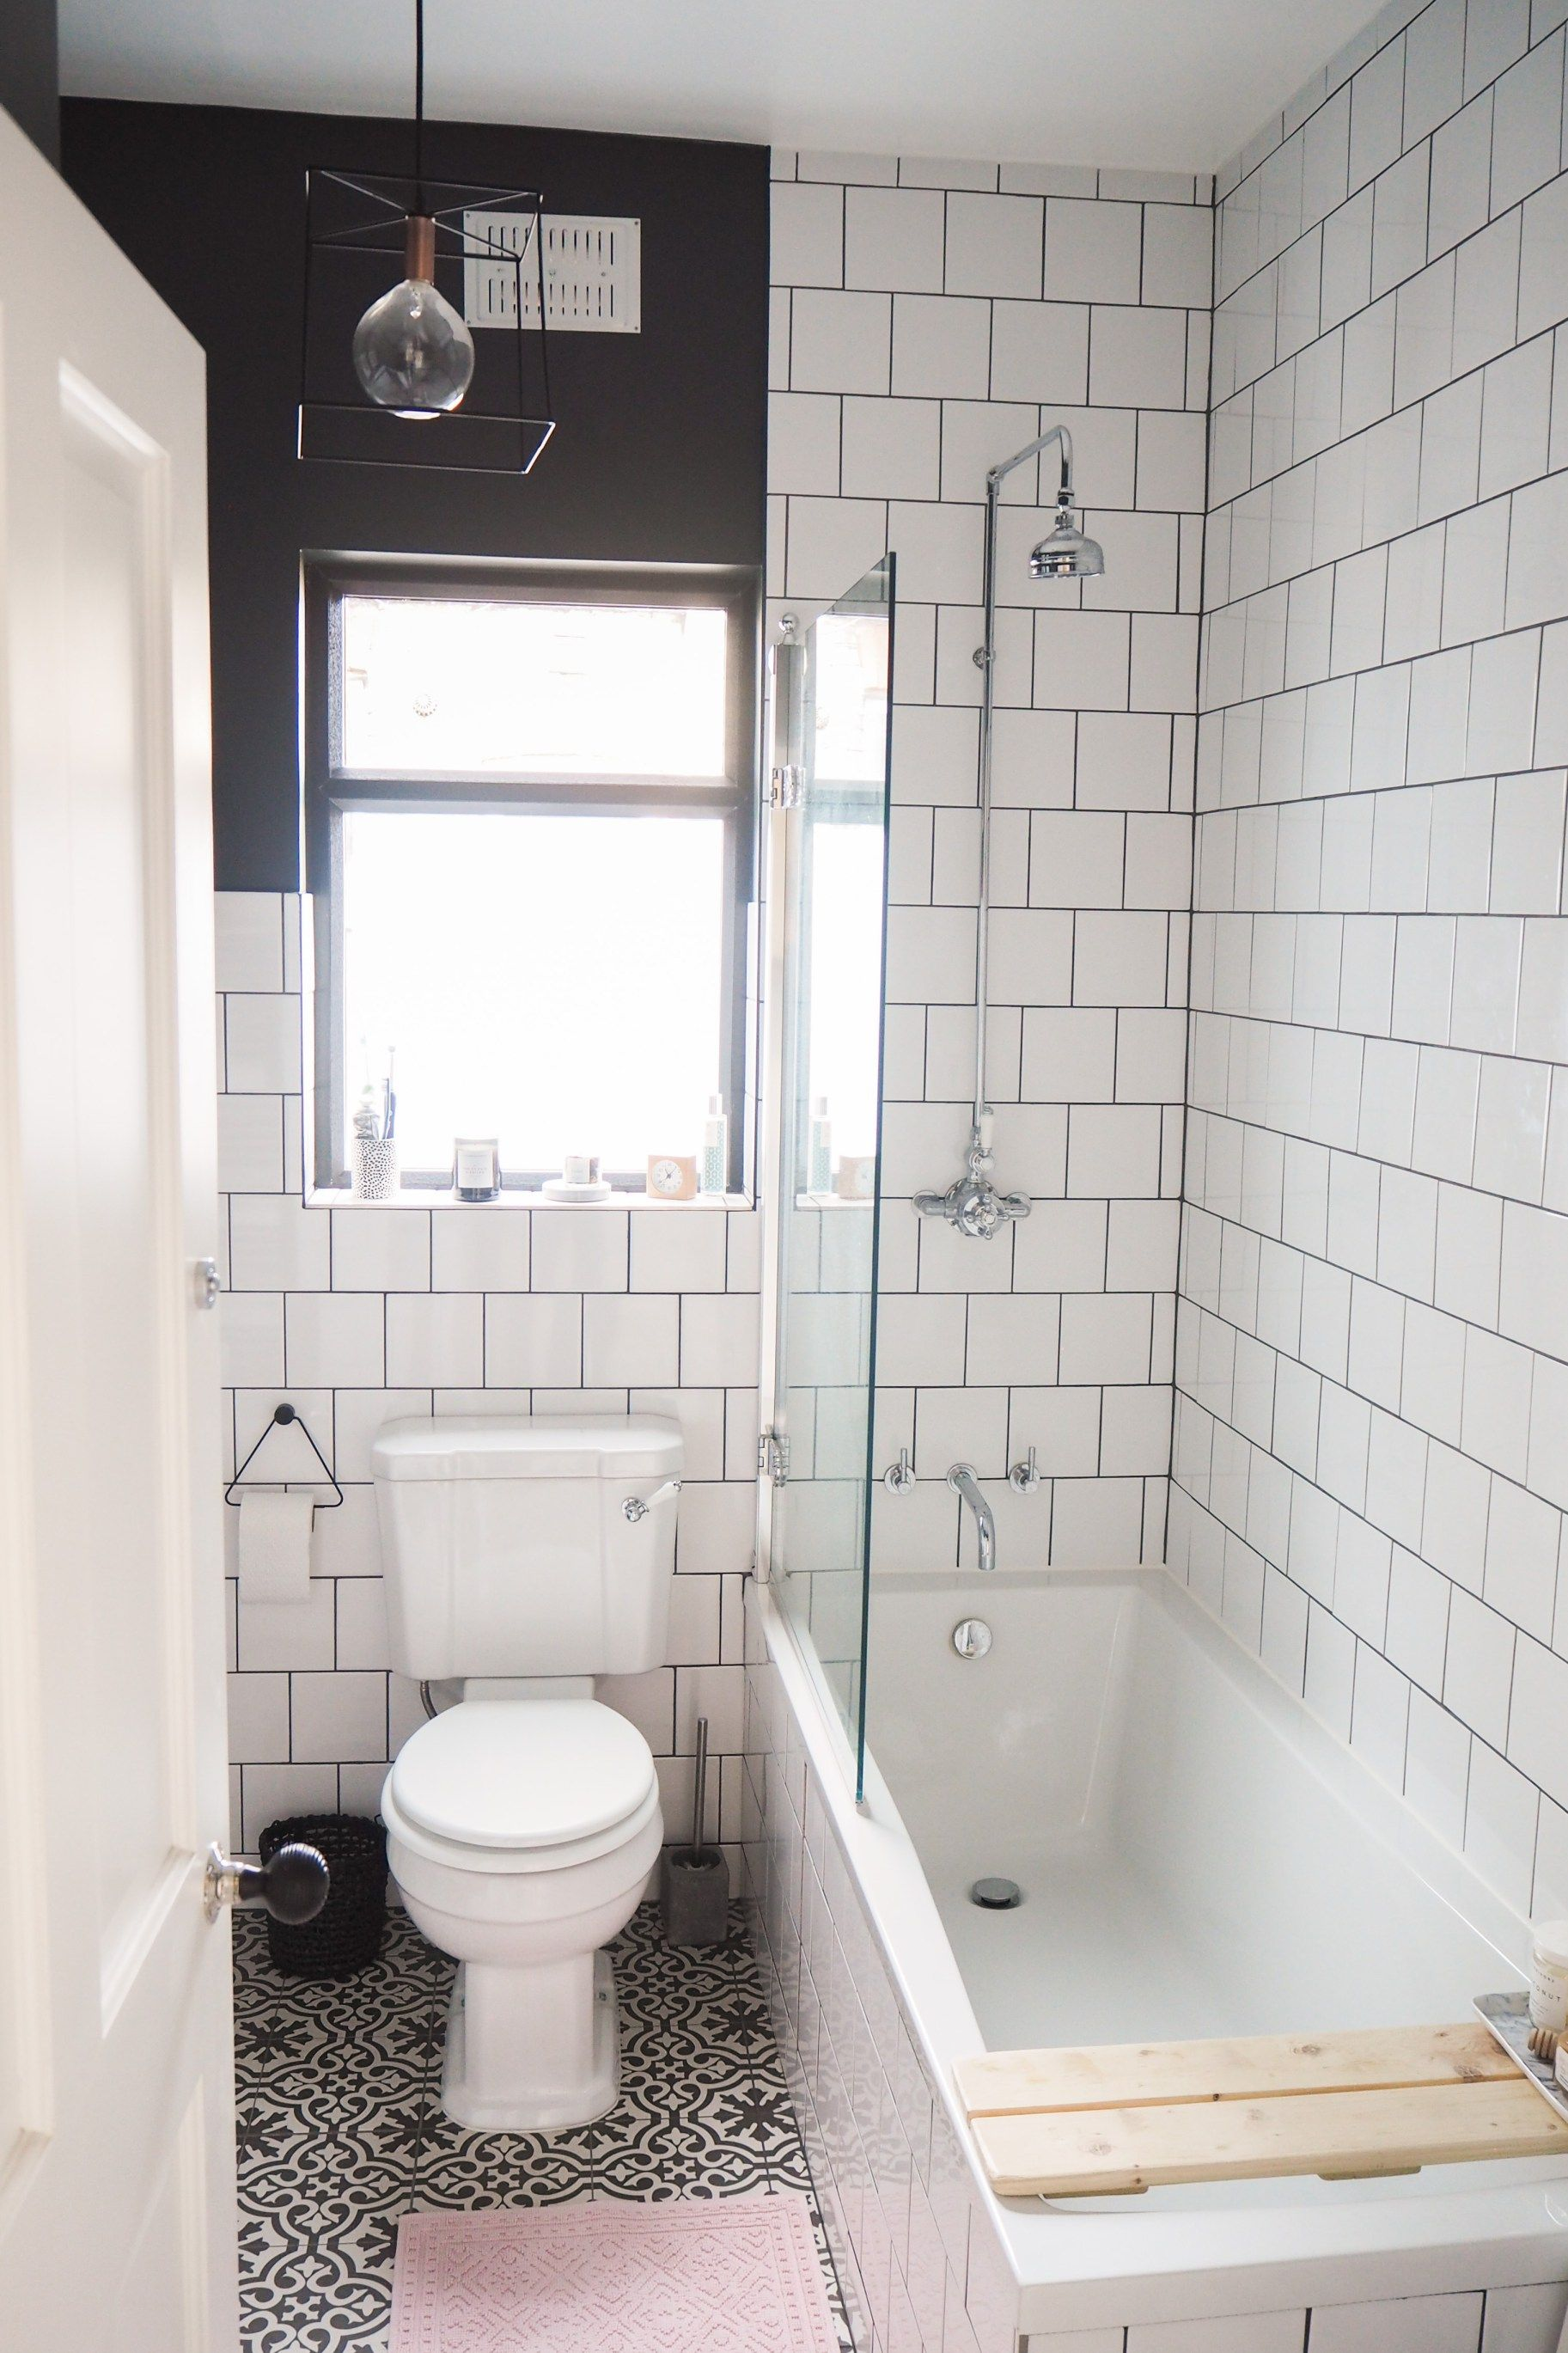 Interiors Update Bathroom  The Frugality Blog